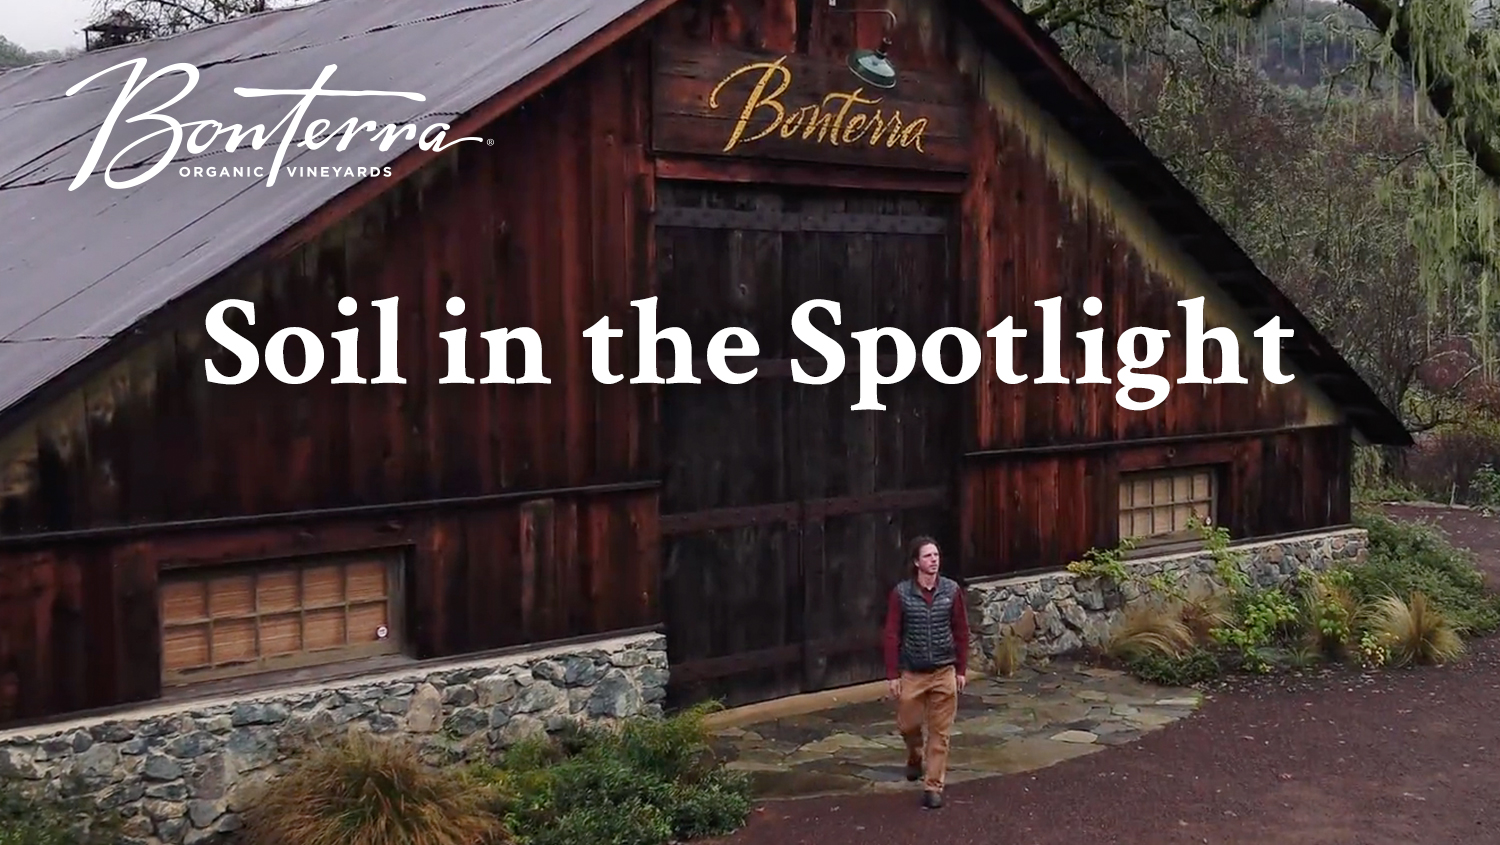 Bonterra Director of Organic and Biodynamic Vineyards, Joseph Brinkley, shares more on the winery's pioneering soil study. Watch the video.